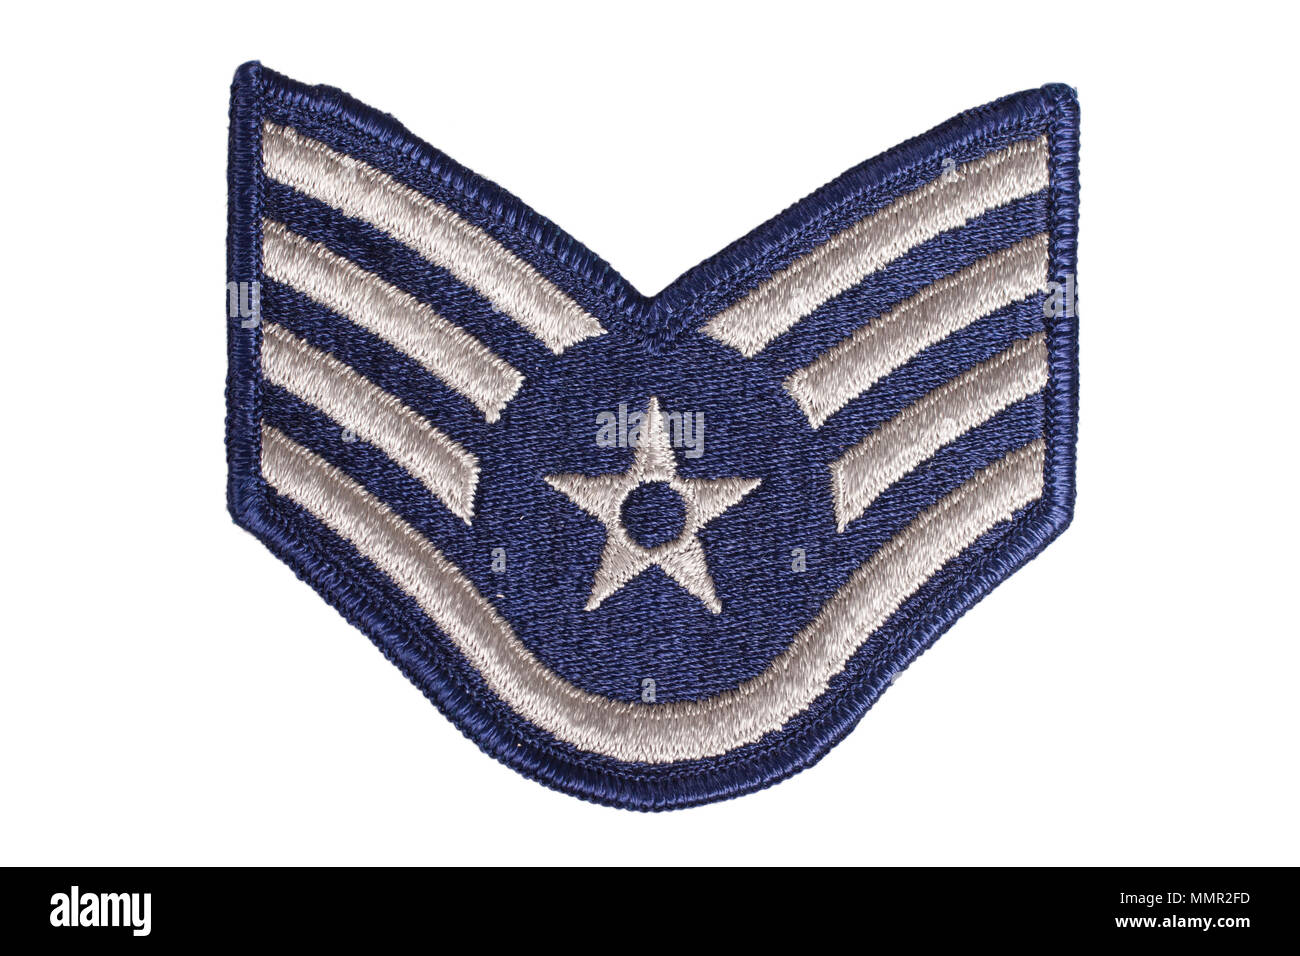 Us Air Force Cut Out Stock Images & Pictures - Alamy